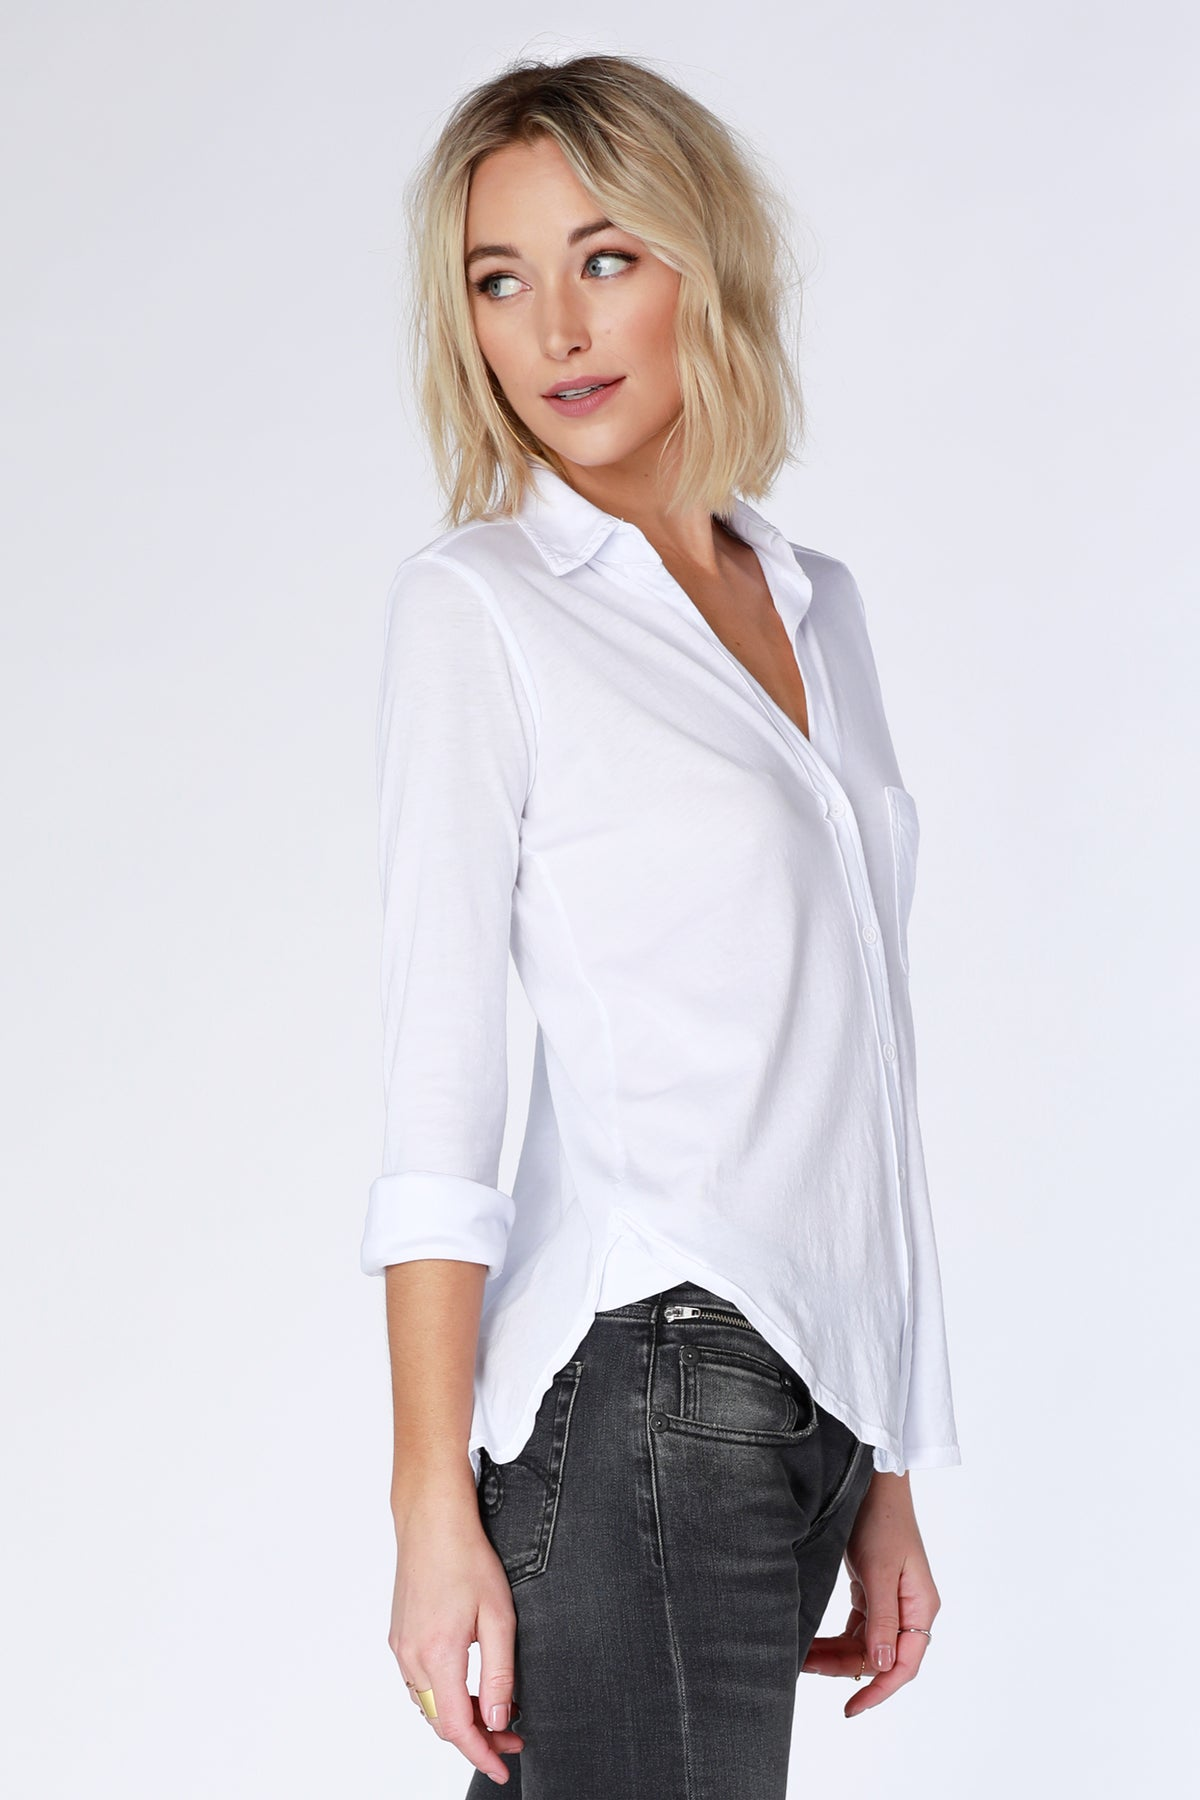 Knit Button-Up Shirt - bobi Los Angeles